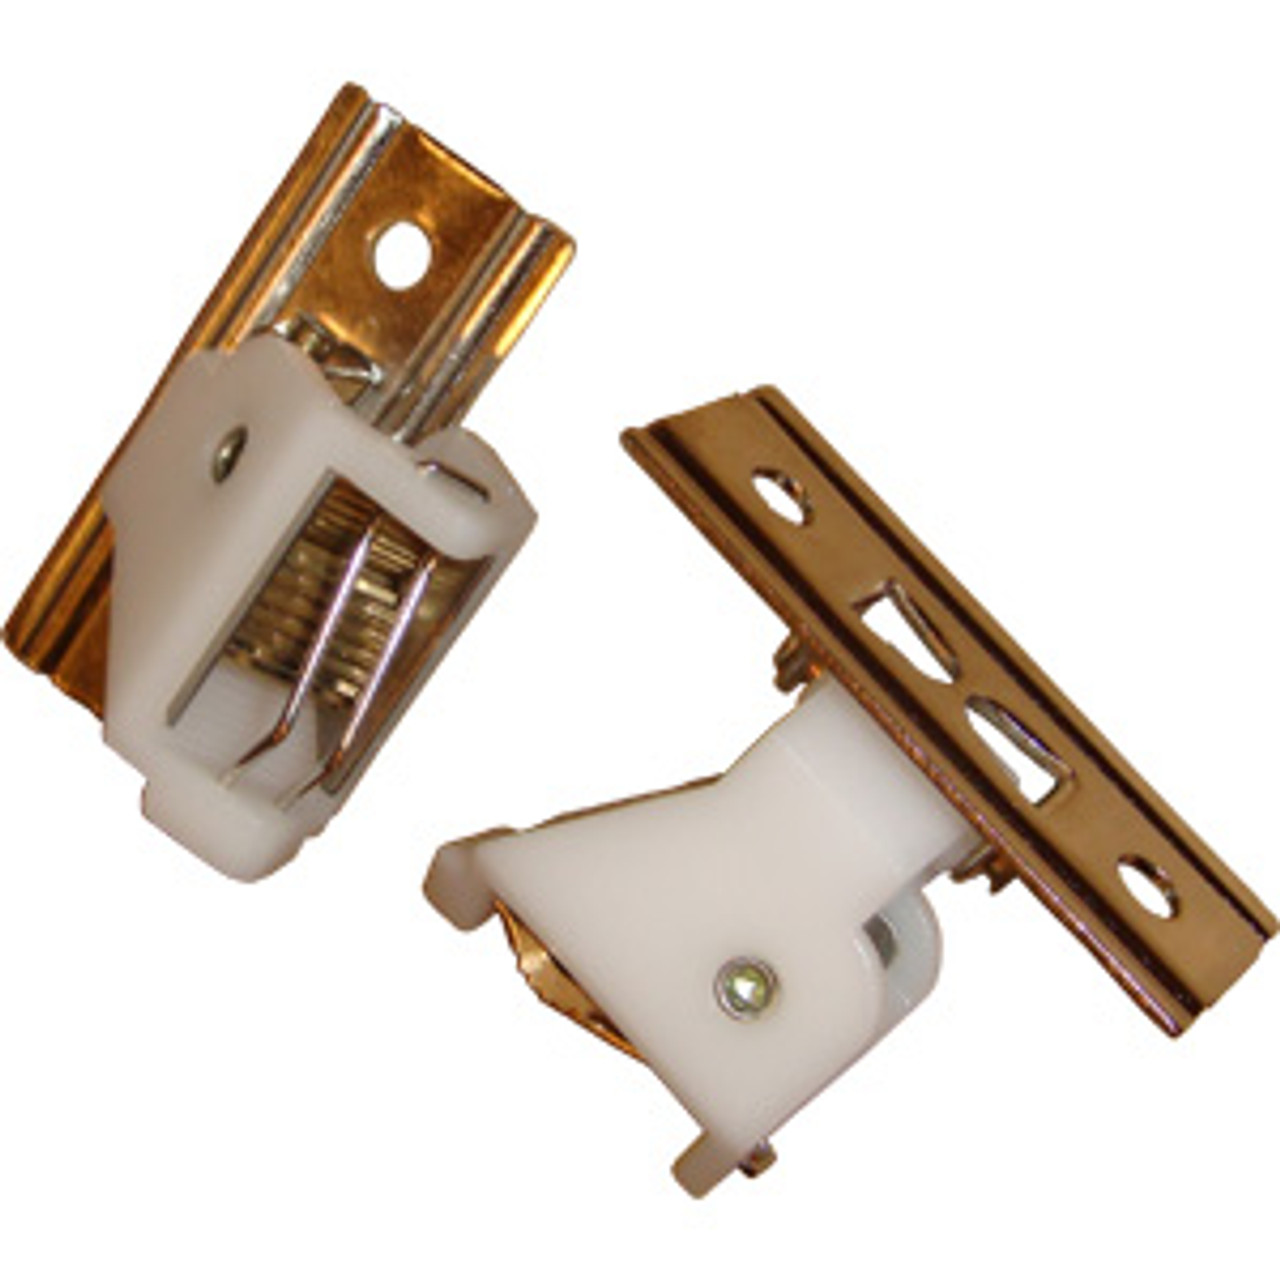 CORD LOCK FOR ROMAN AND AUSTRIAN SHADES-HOLDS UP   TO 3 CORDS